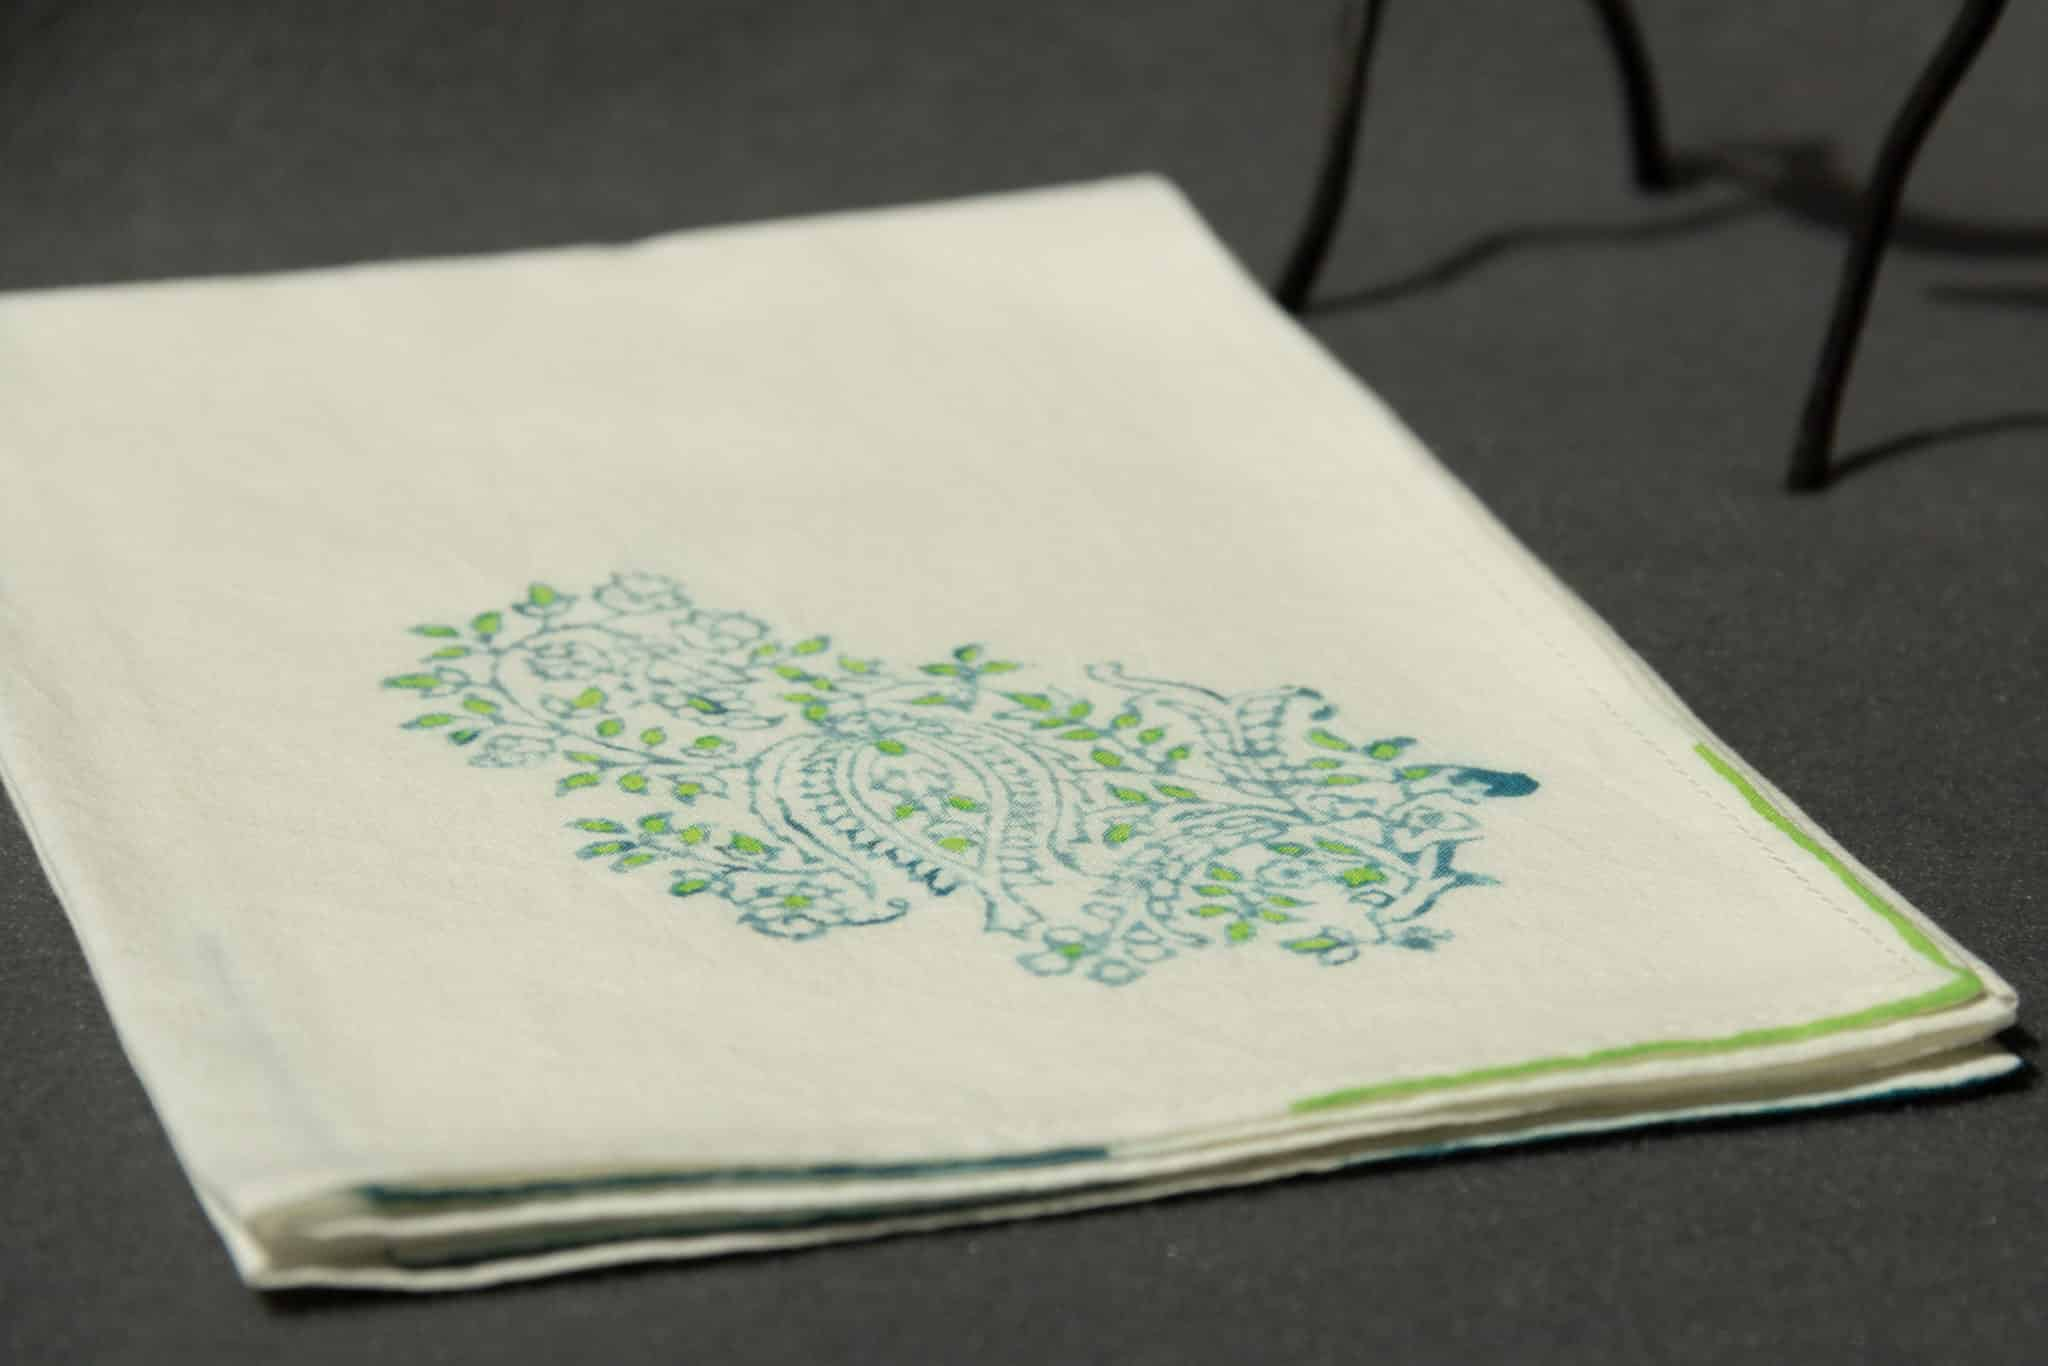 A folded handkerchief with a vintage woodblock print in green and blue